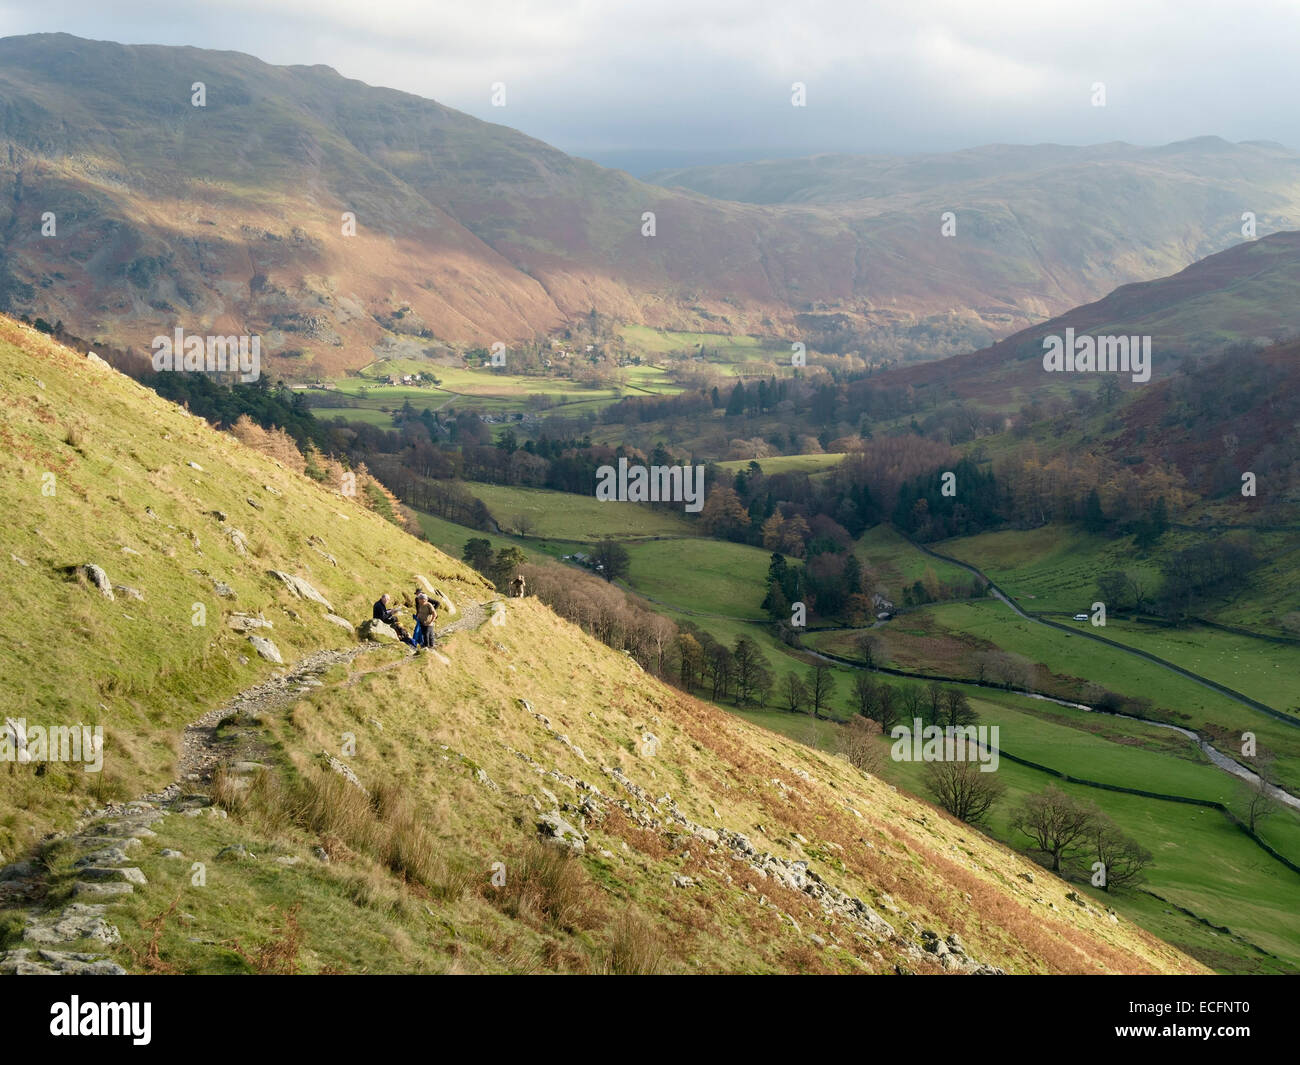 Hill walkers on path on slopes of Grisedale valley, Patterdale, Lake District, Cumbria, England, UK - Stock Image